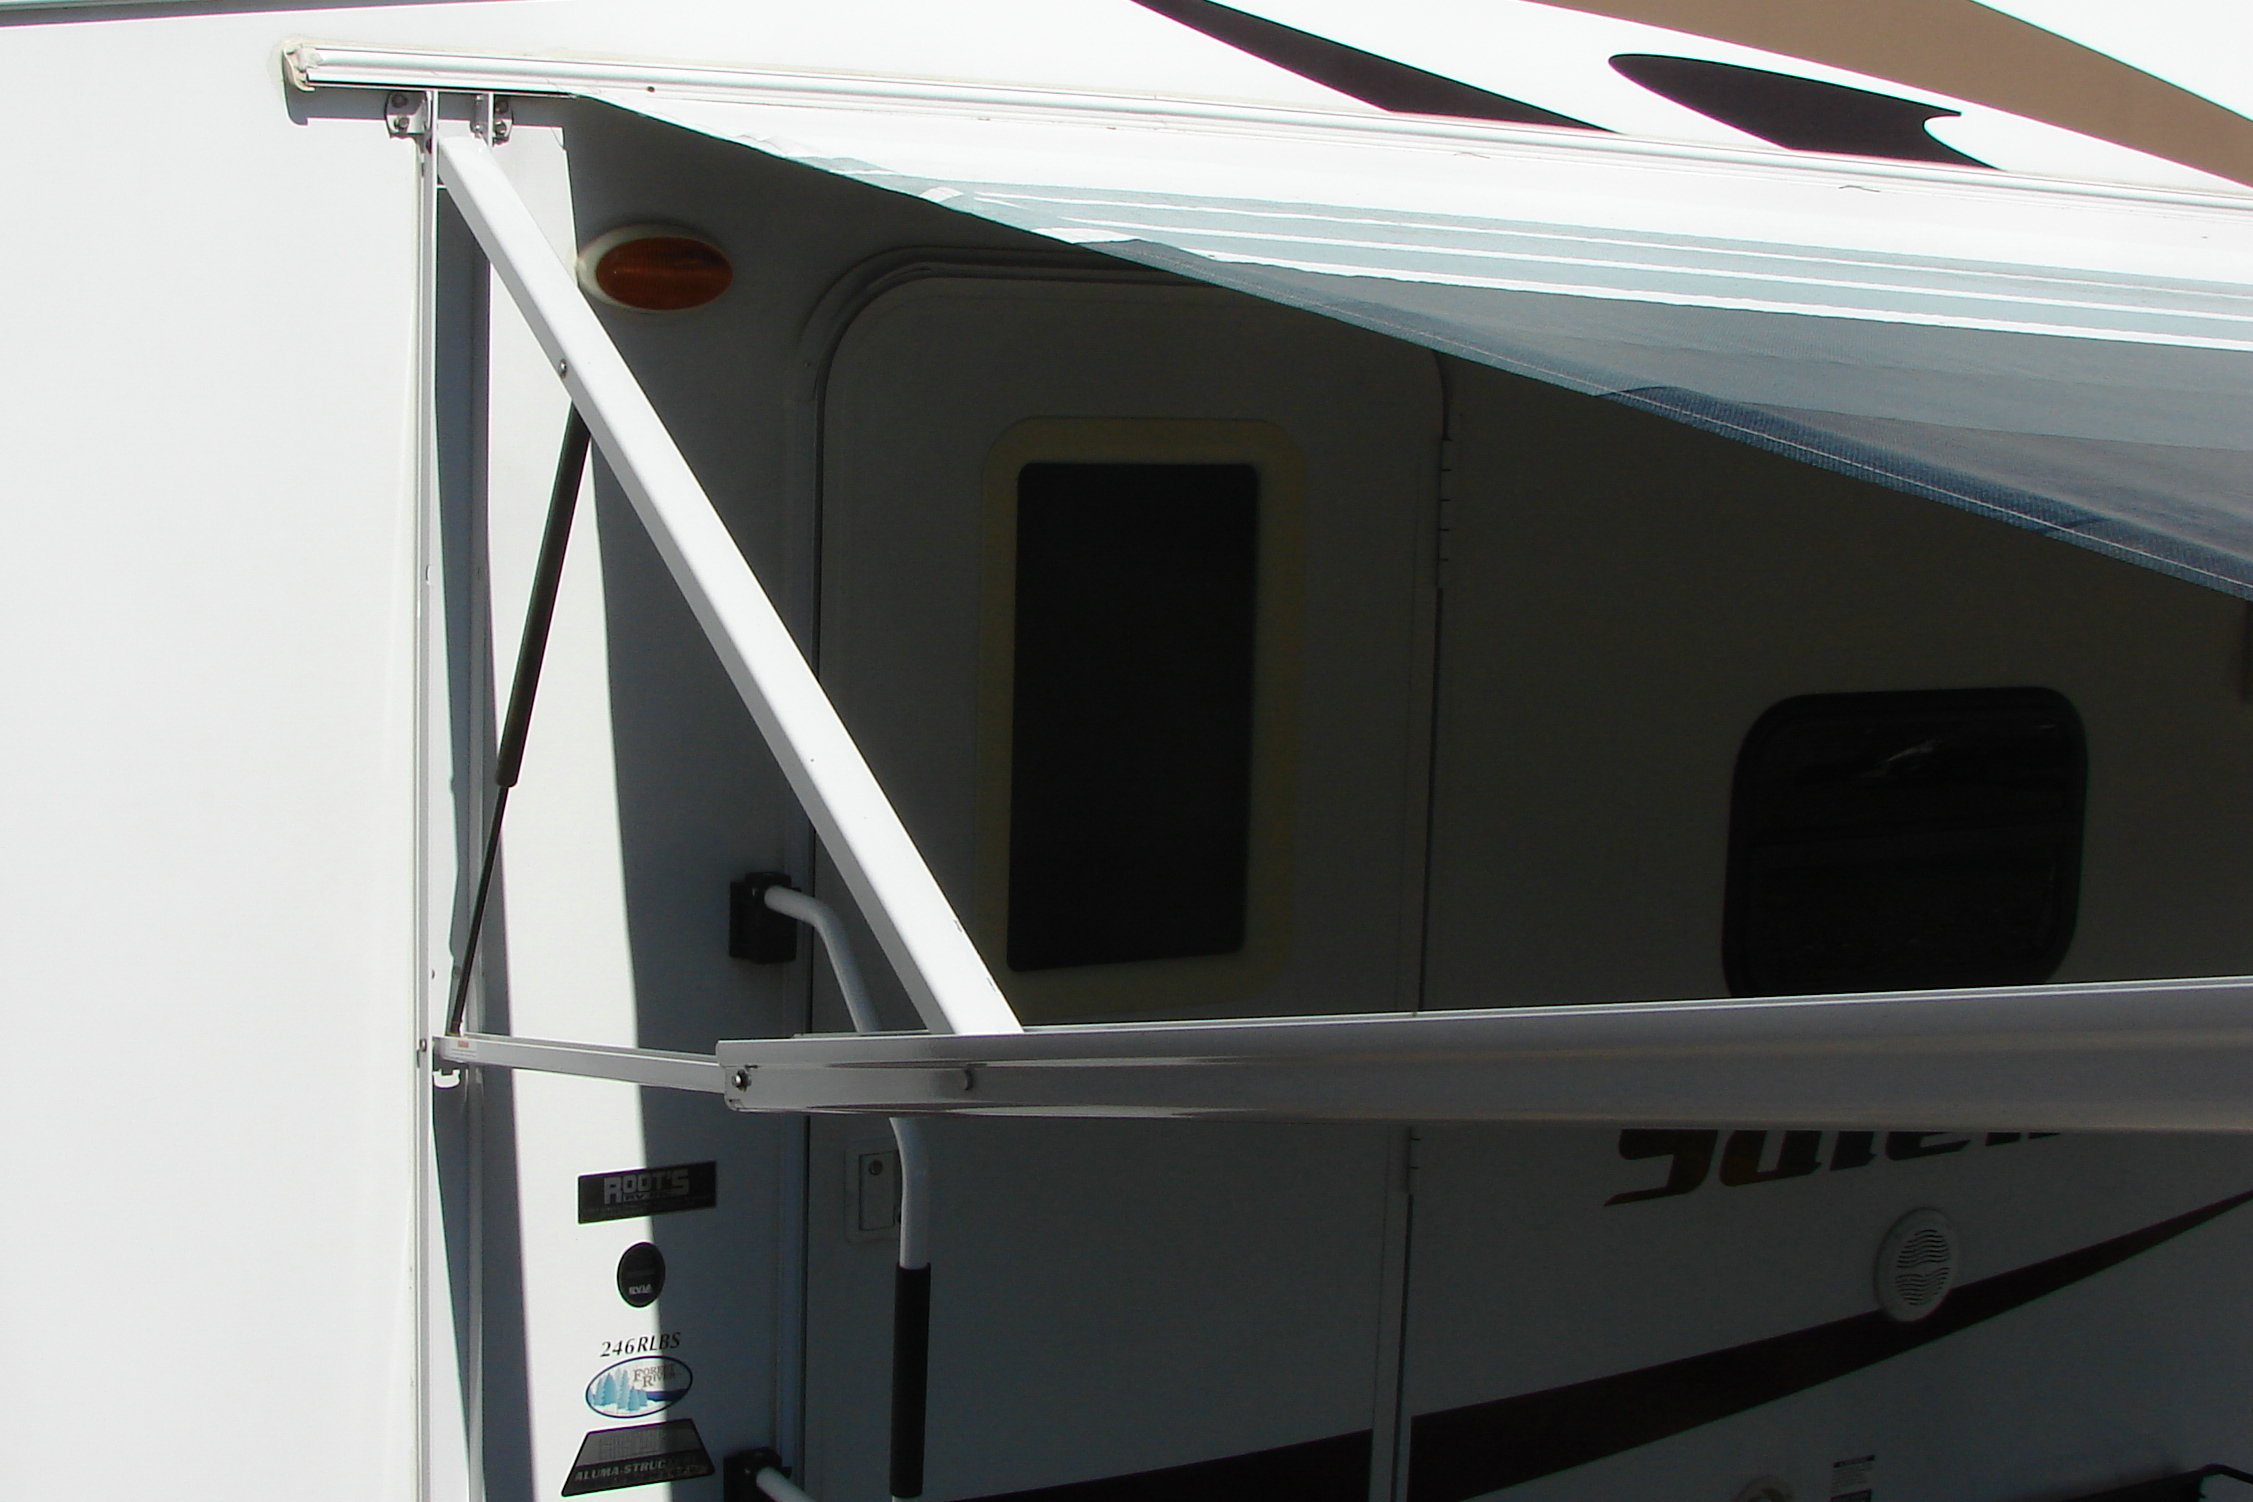 dometic power awning. Made in 07 camper 08 5th wheel salem LA.